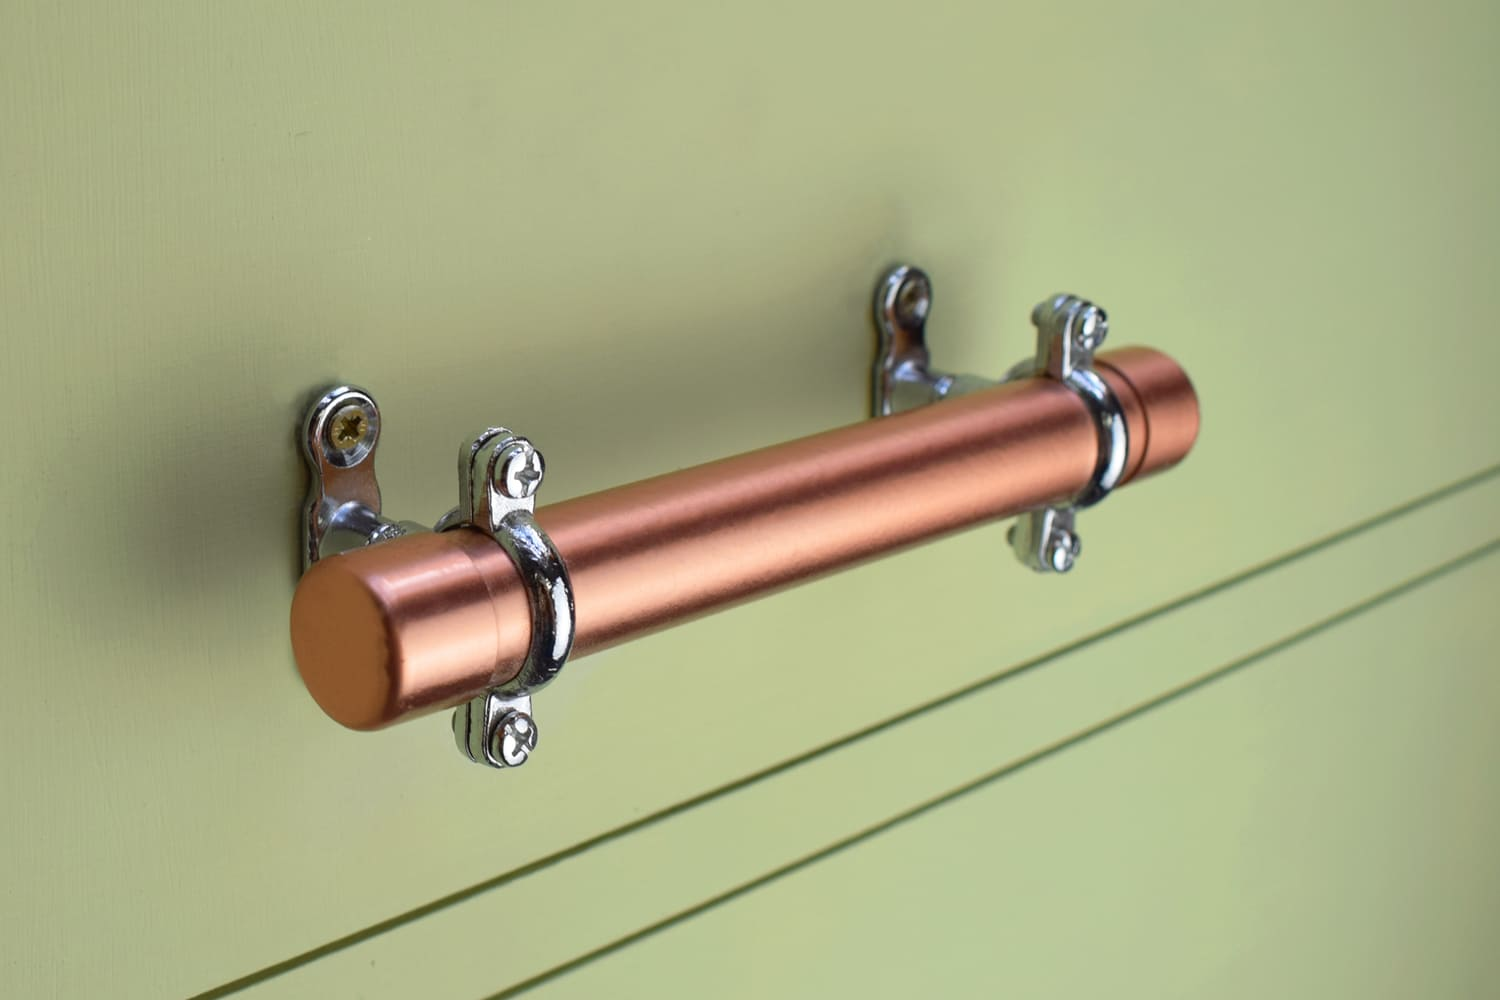 Proper Copper Design - Bar Pull Handle - Copper Handle with Brackets - Copper Bracket Handles